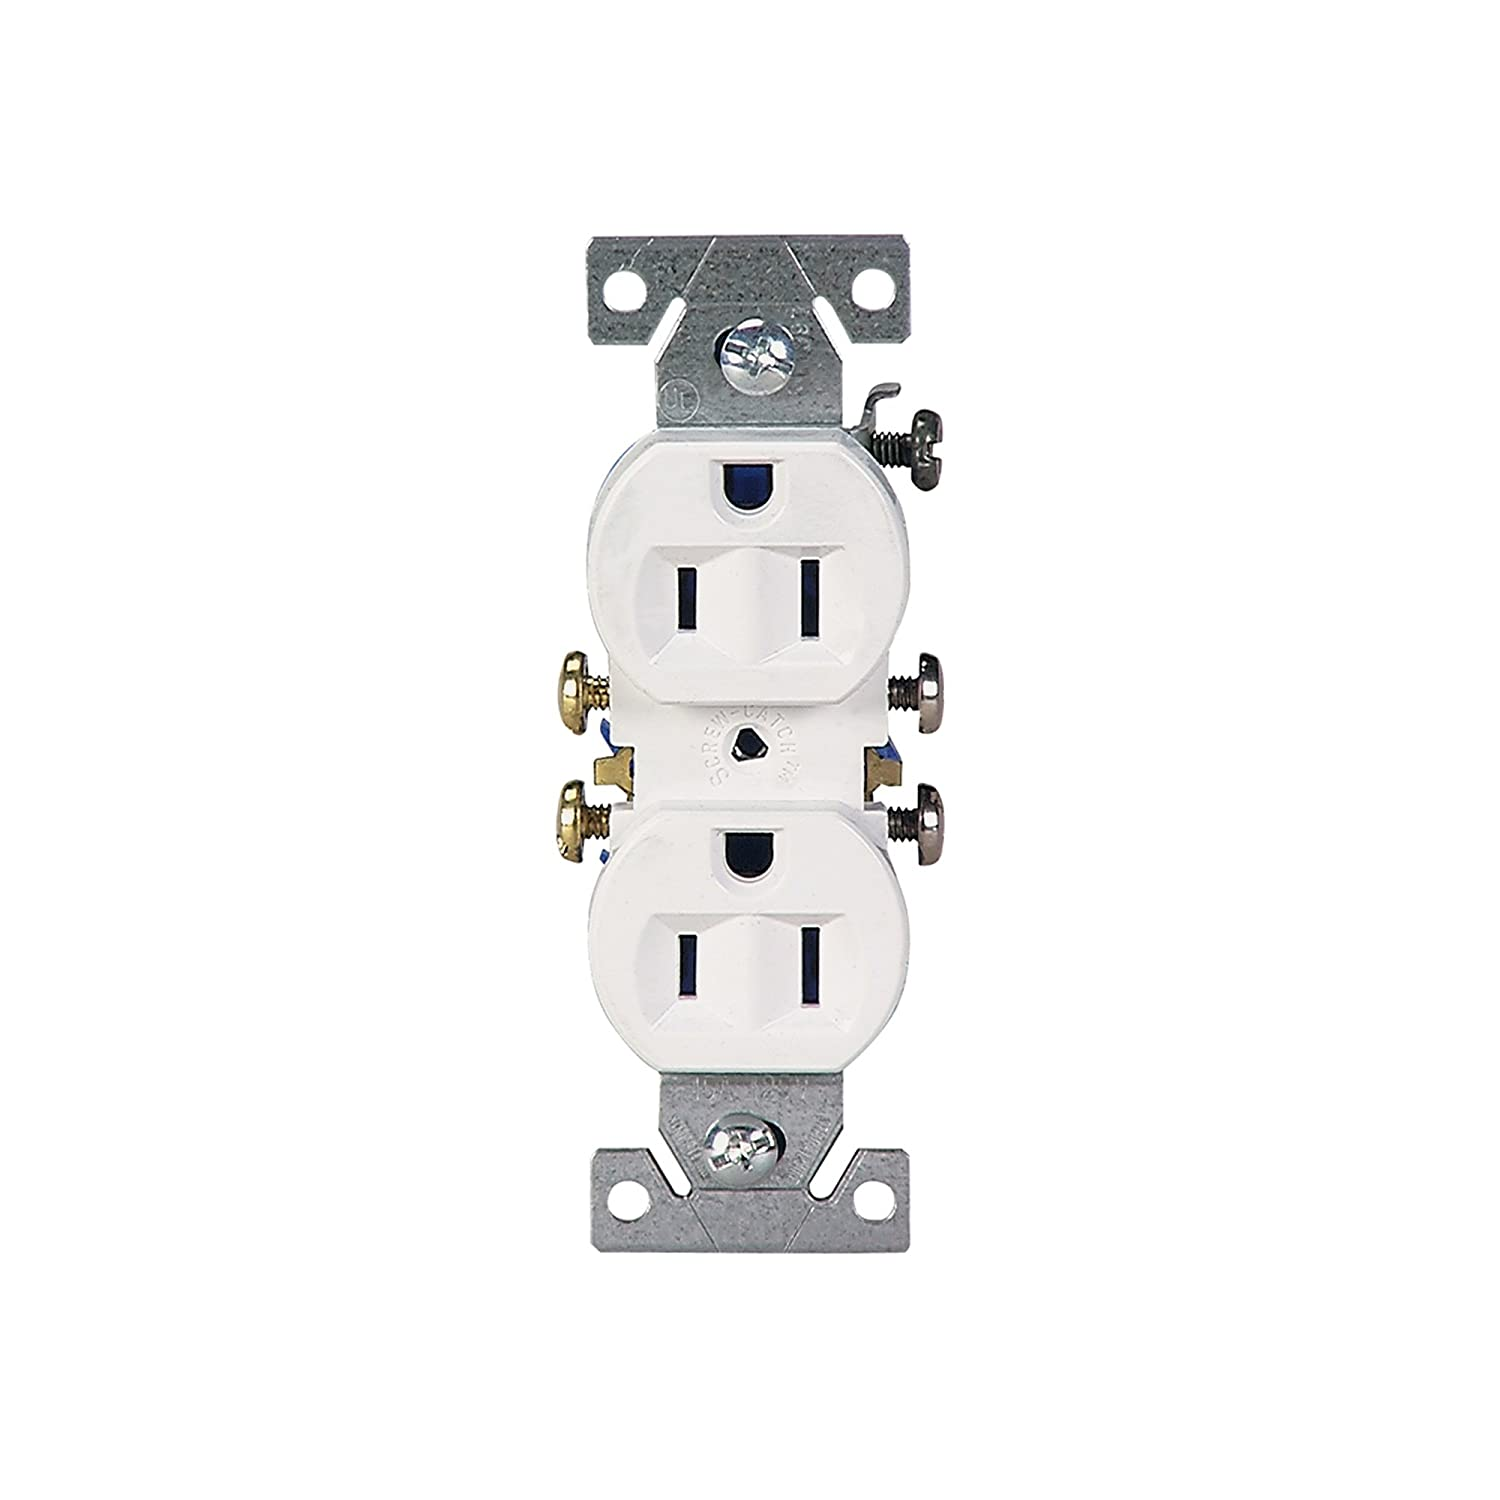 Cooper Wiring Devices 15-Amp White Duplex Electrical Outlet; White on